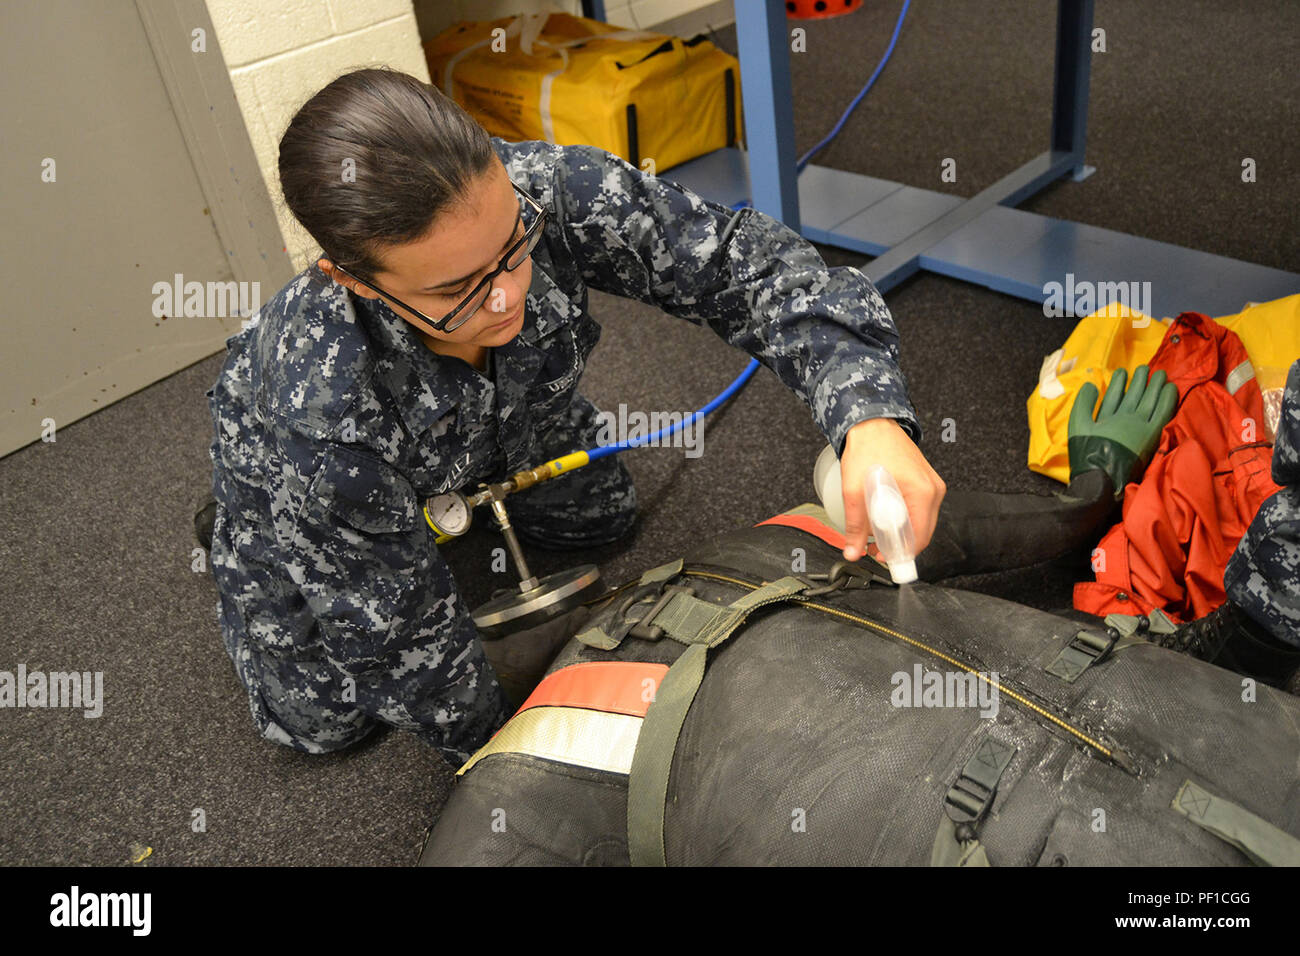 160127-N-BO364-005  JACKSONVILLE, Fla. (Jan. 27, 2016) Aircrew Survival Equipmentman Airman Apprentice Jazmin Velez sprays liquid onto an inflated CWU-60 dry suit to check for leaks. The suit is used by P-3C Orion crewmembers who have to enter a cold-water environment. (U.S. Navy Photo by Clifford Davis/Released) - Stock Image